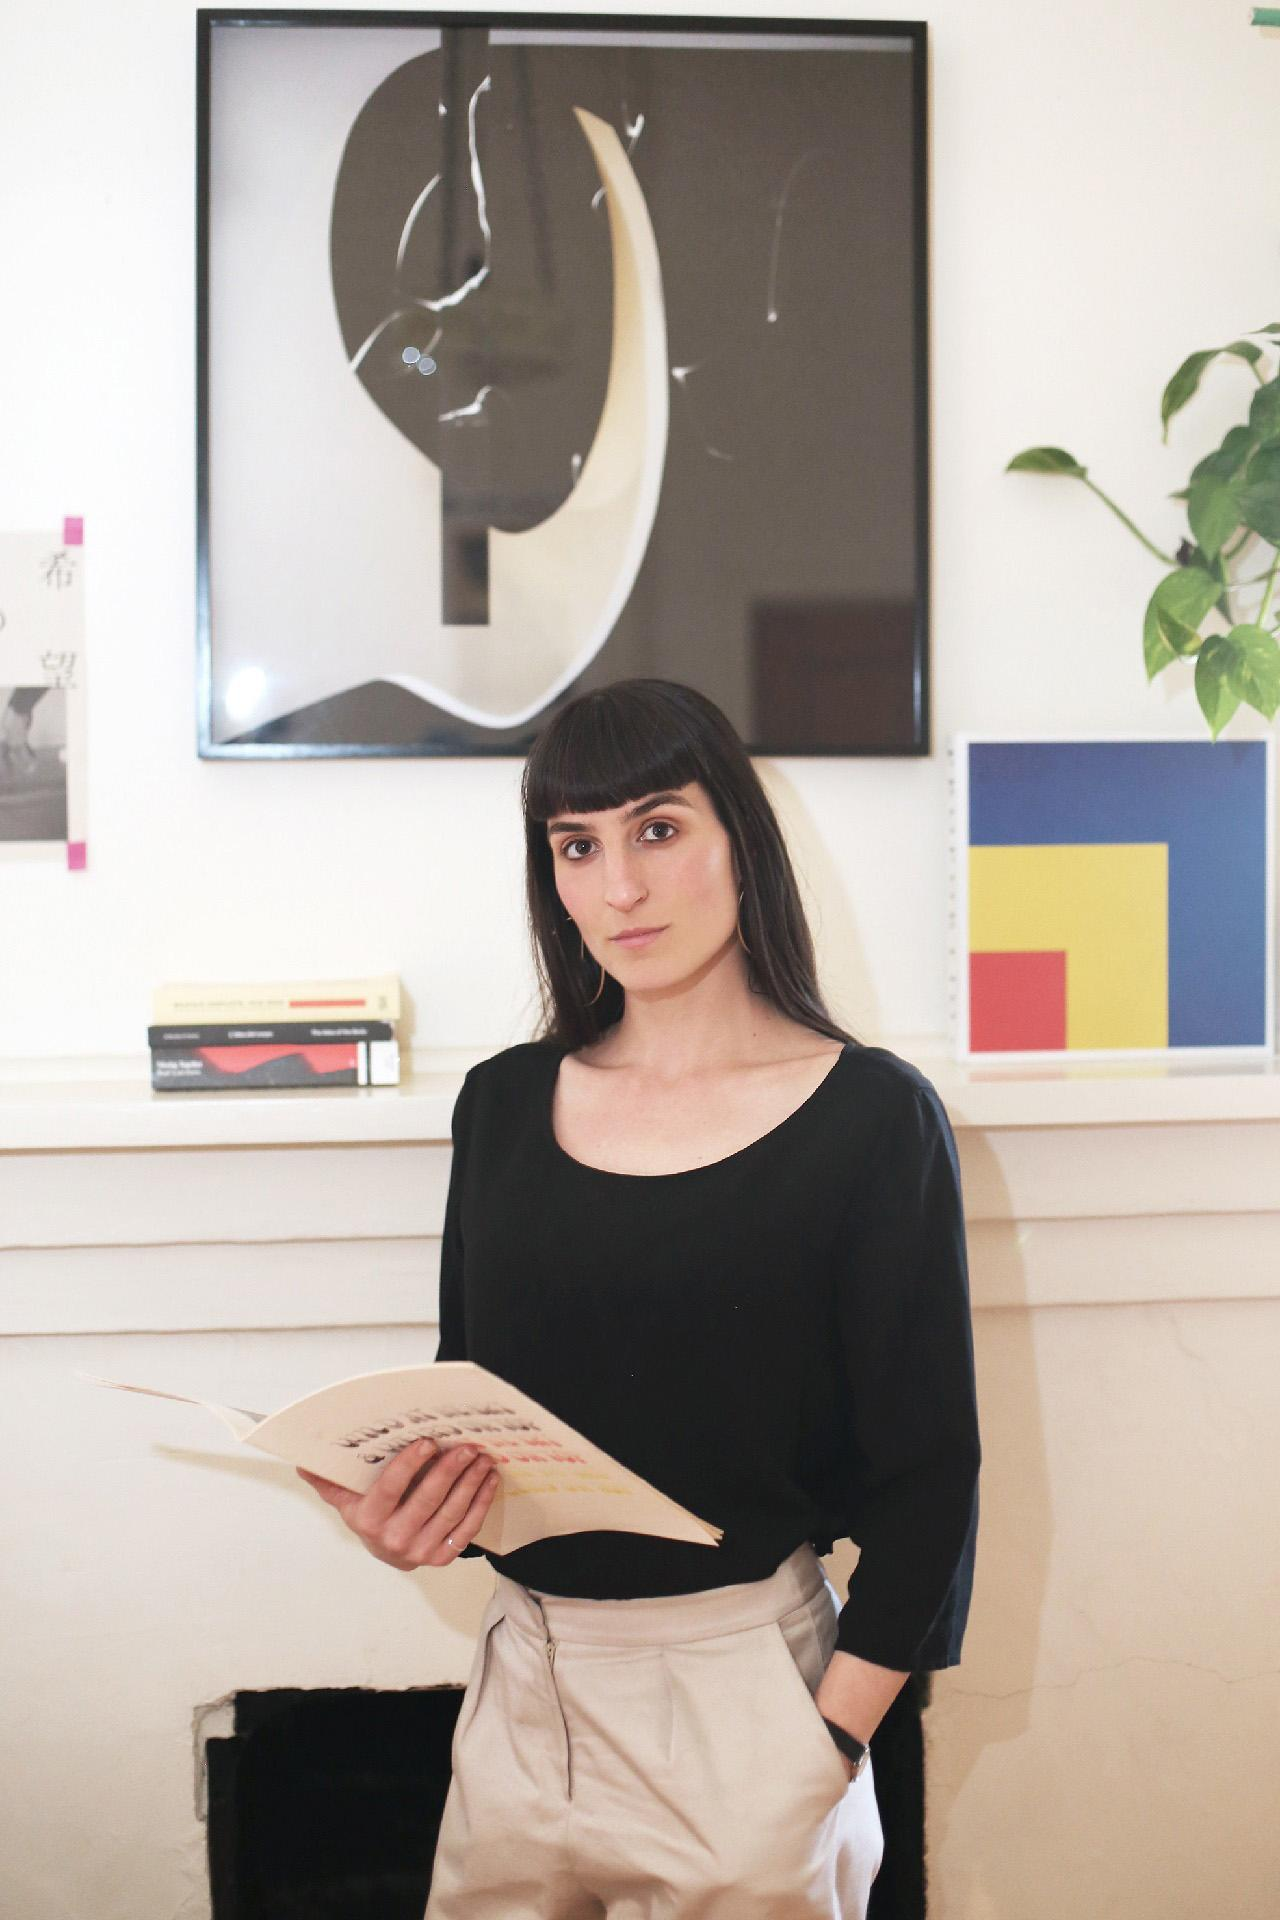 zo euml croggon artist interview ngv zoeuml croggon is an emerging artist based in melbourne whose recent practice is characterised by sophisticated collages of deceptive simplicity